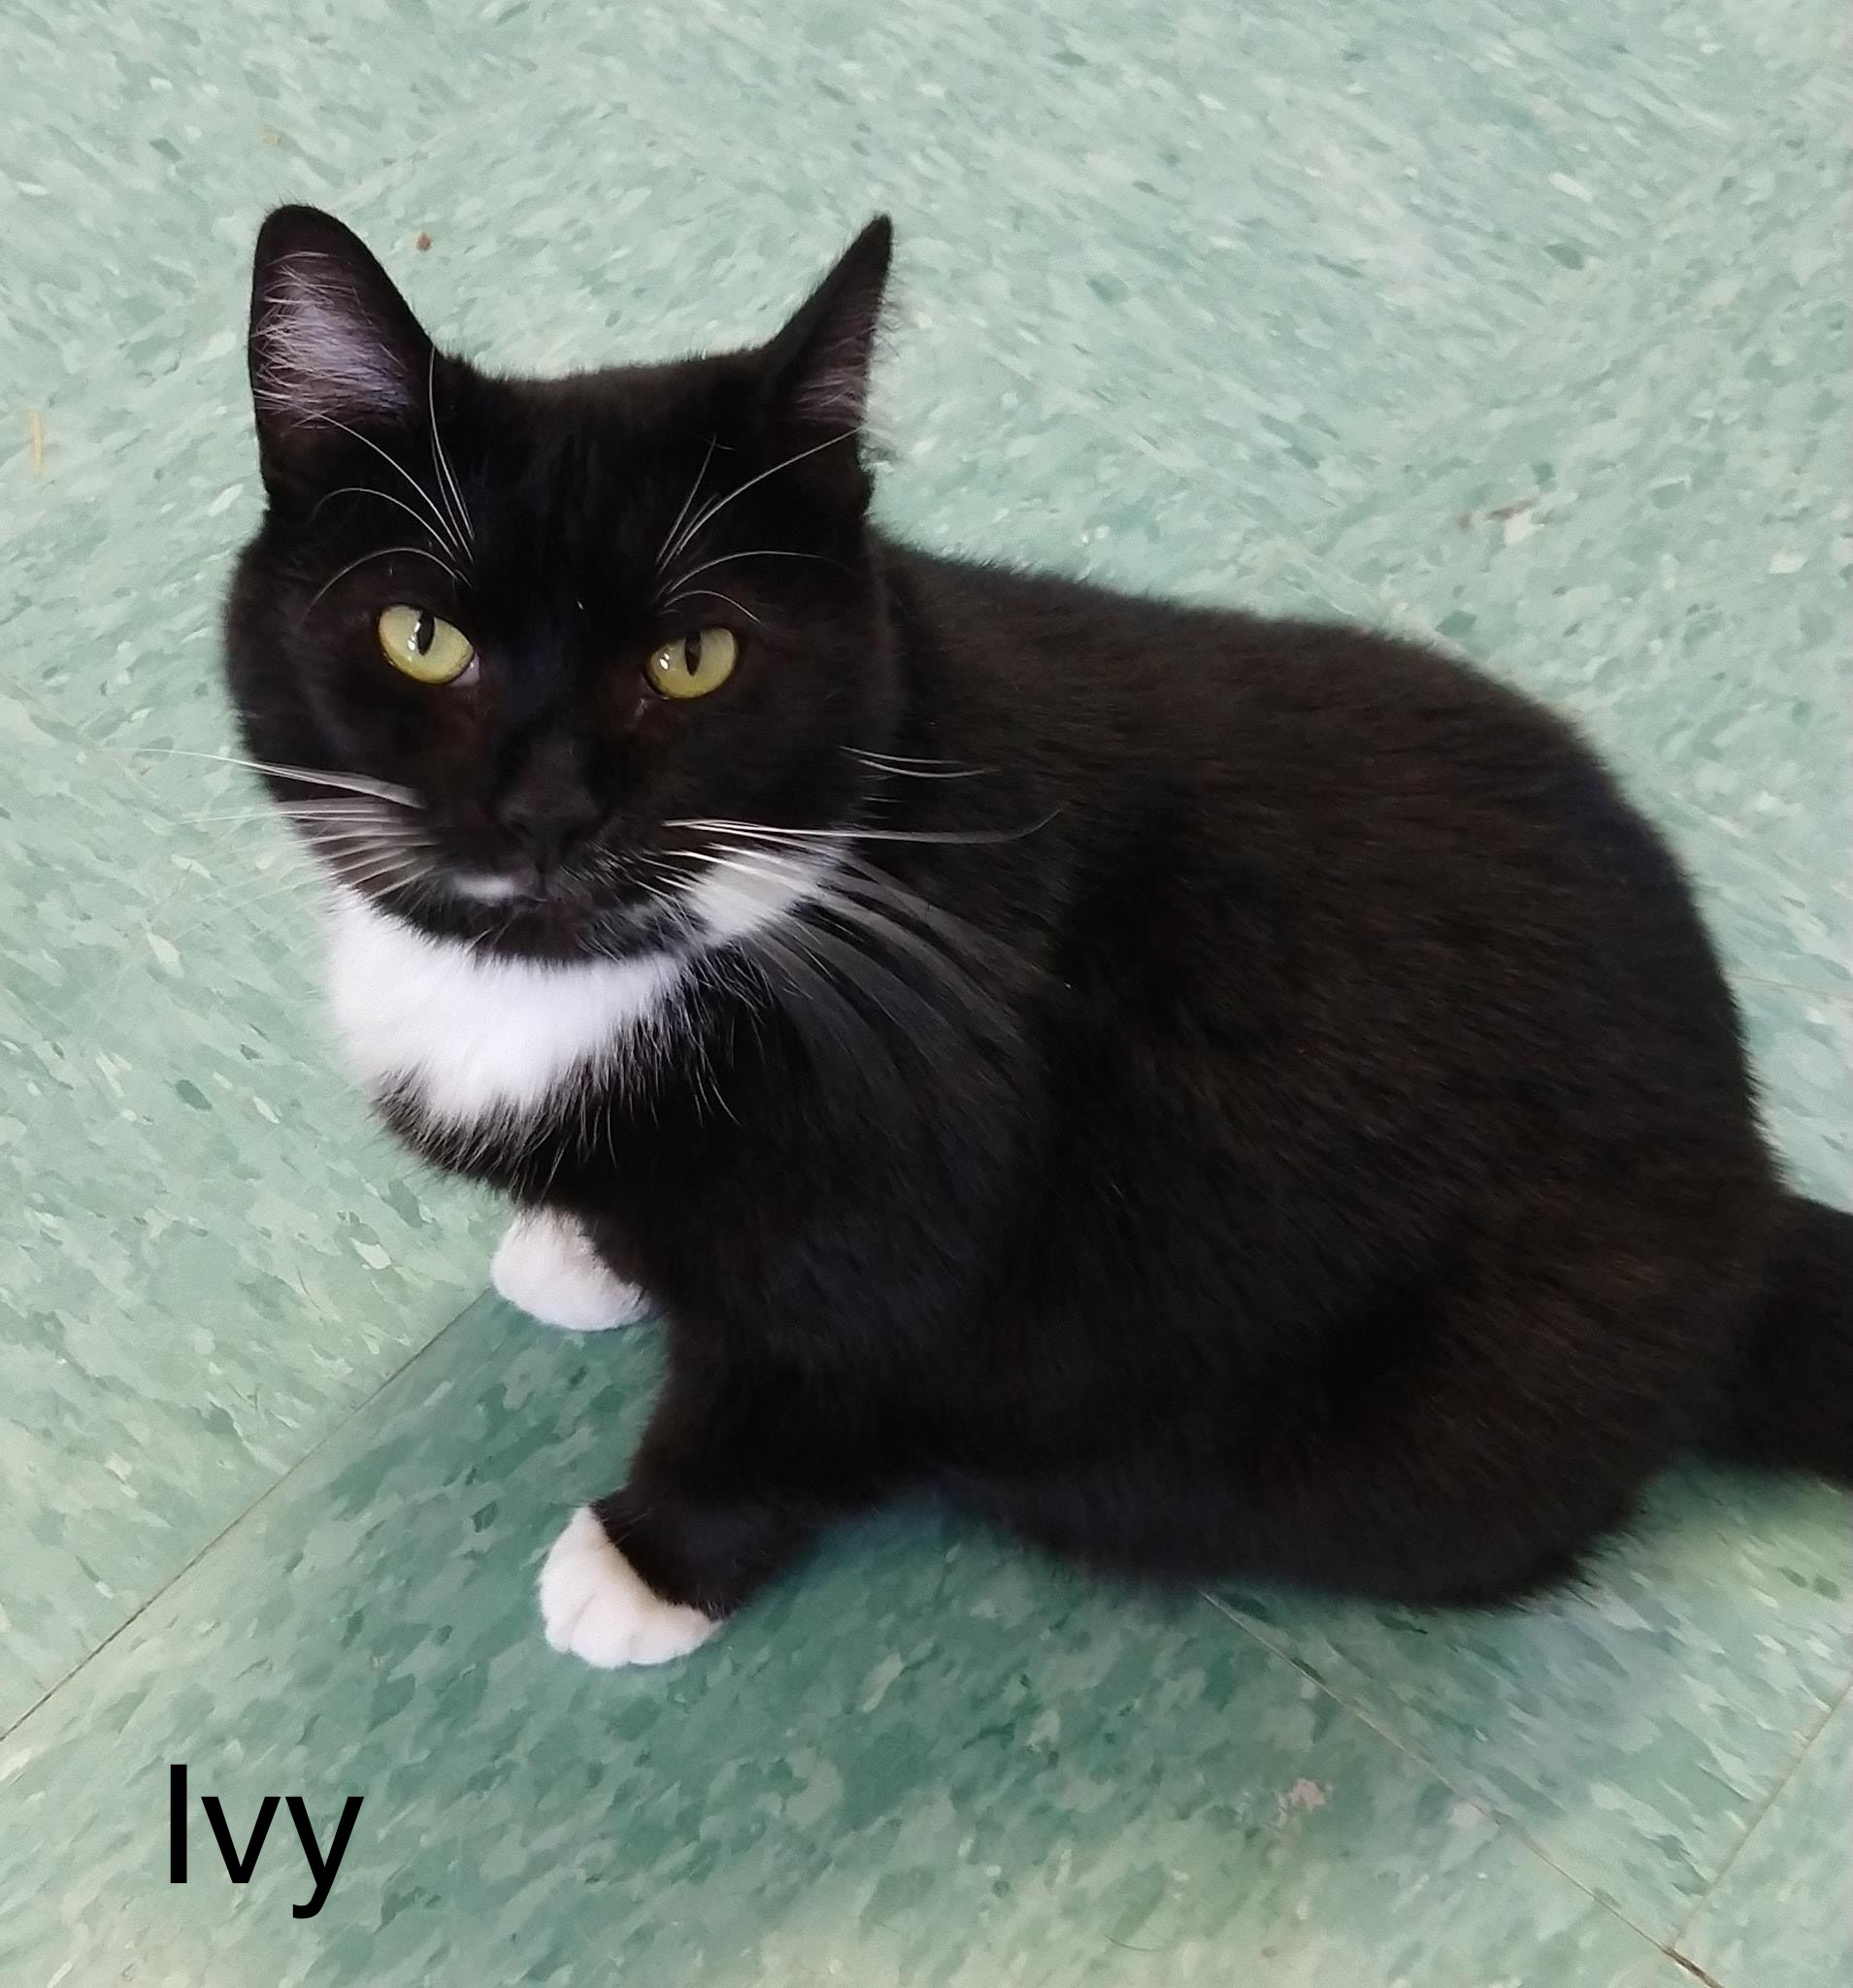 Ivy - Domestic Short Hair